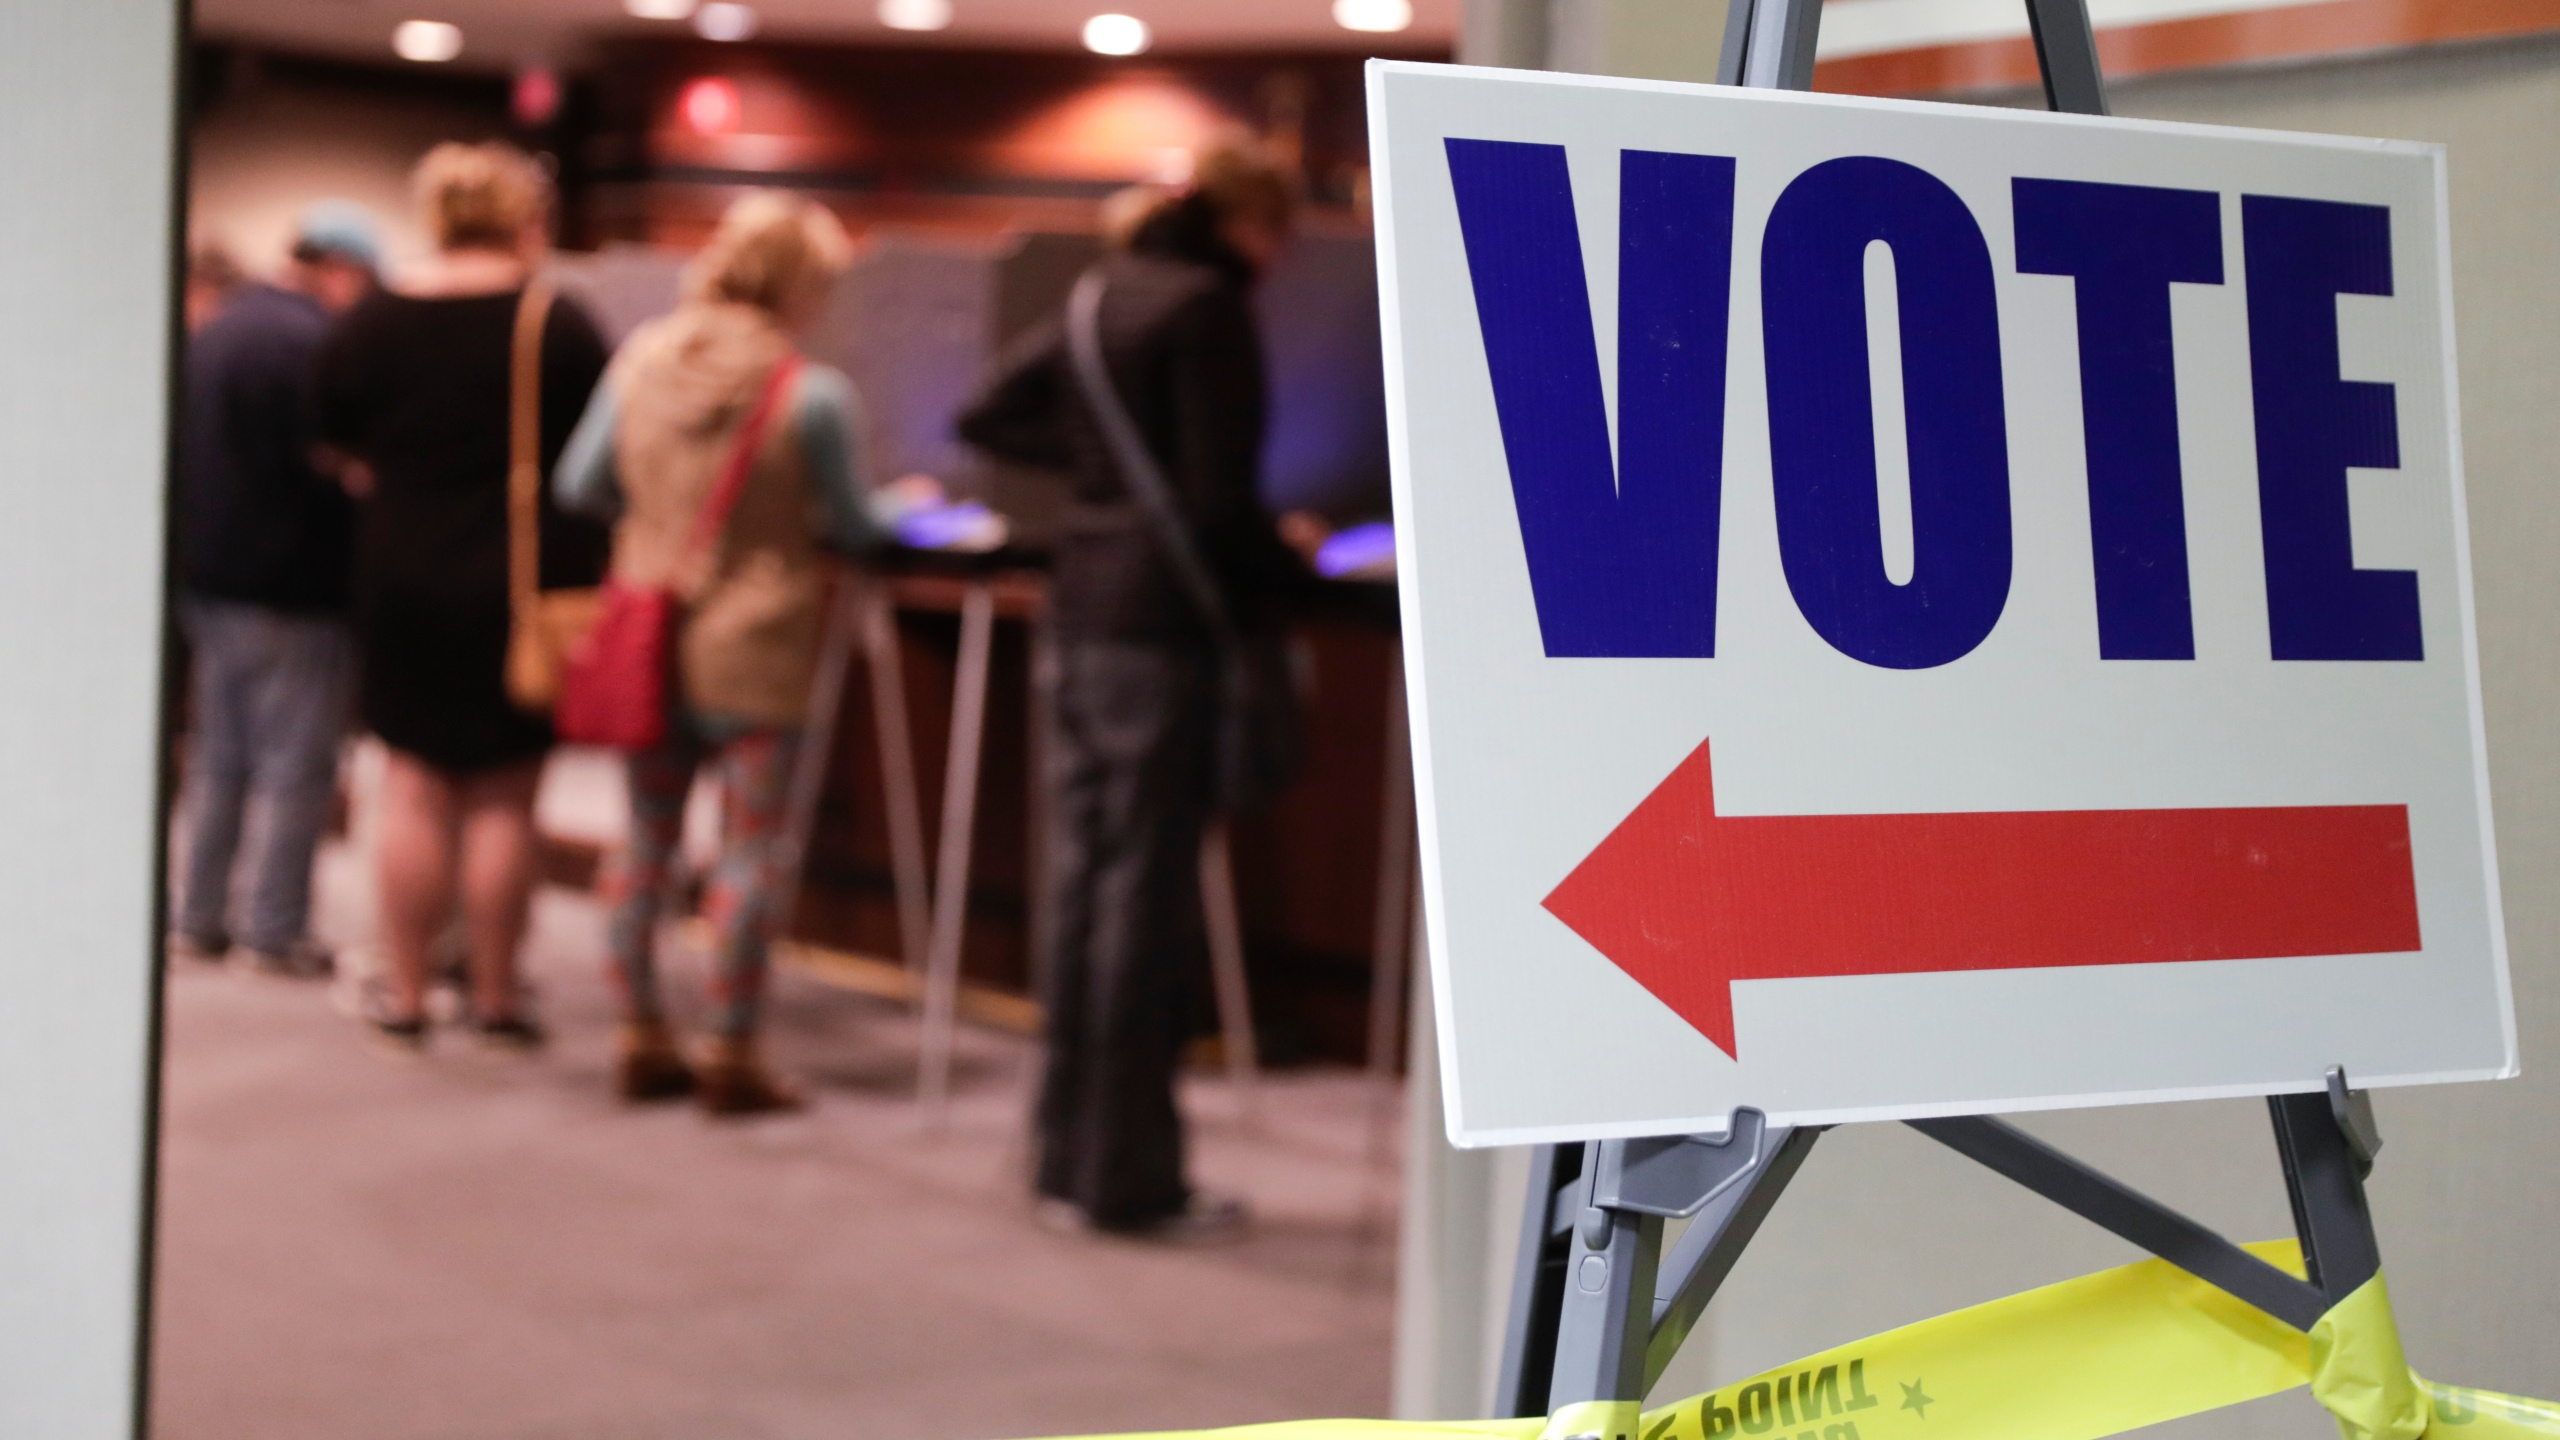 Early_Voting_Indiana_43044-159532-159532.jpg01271470